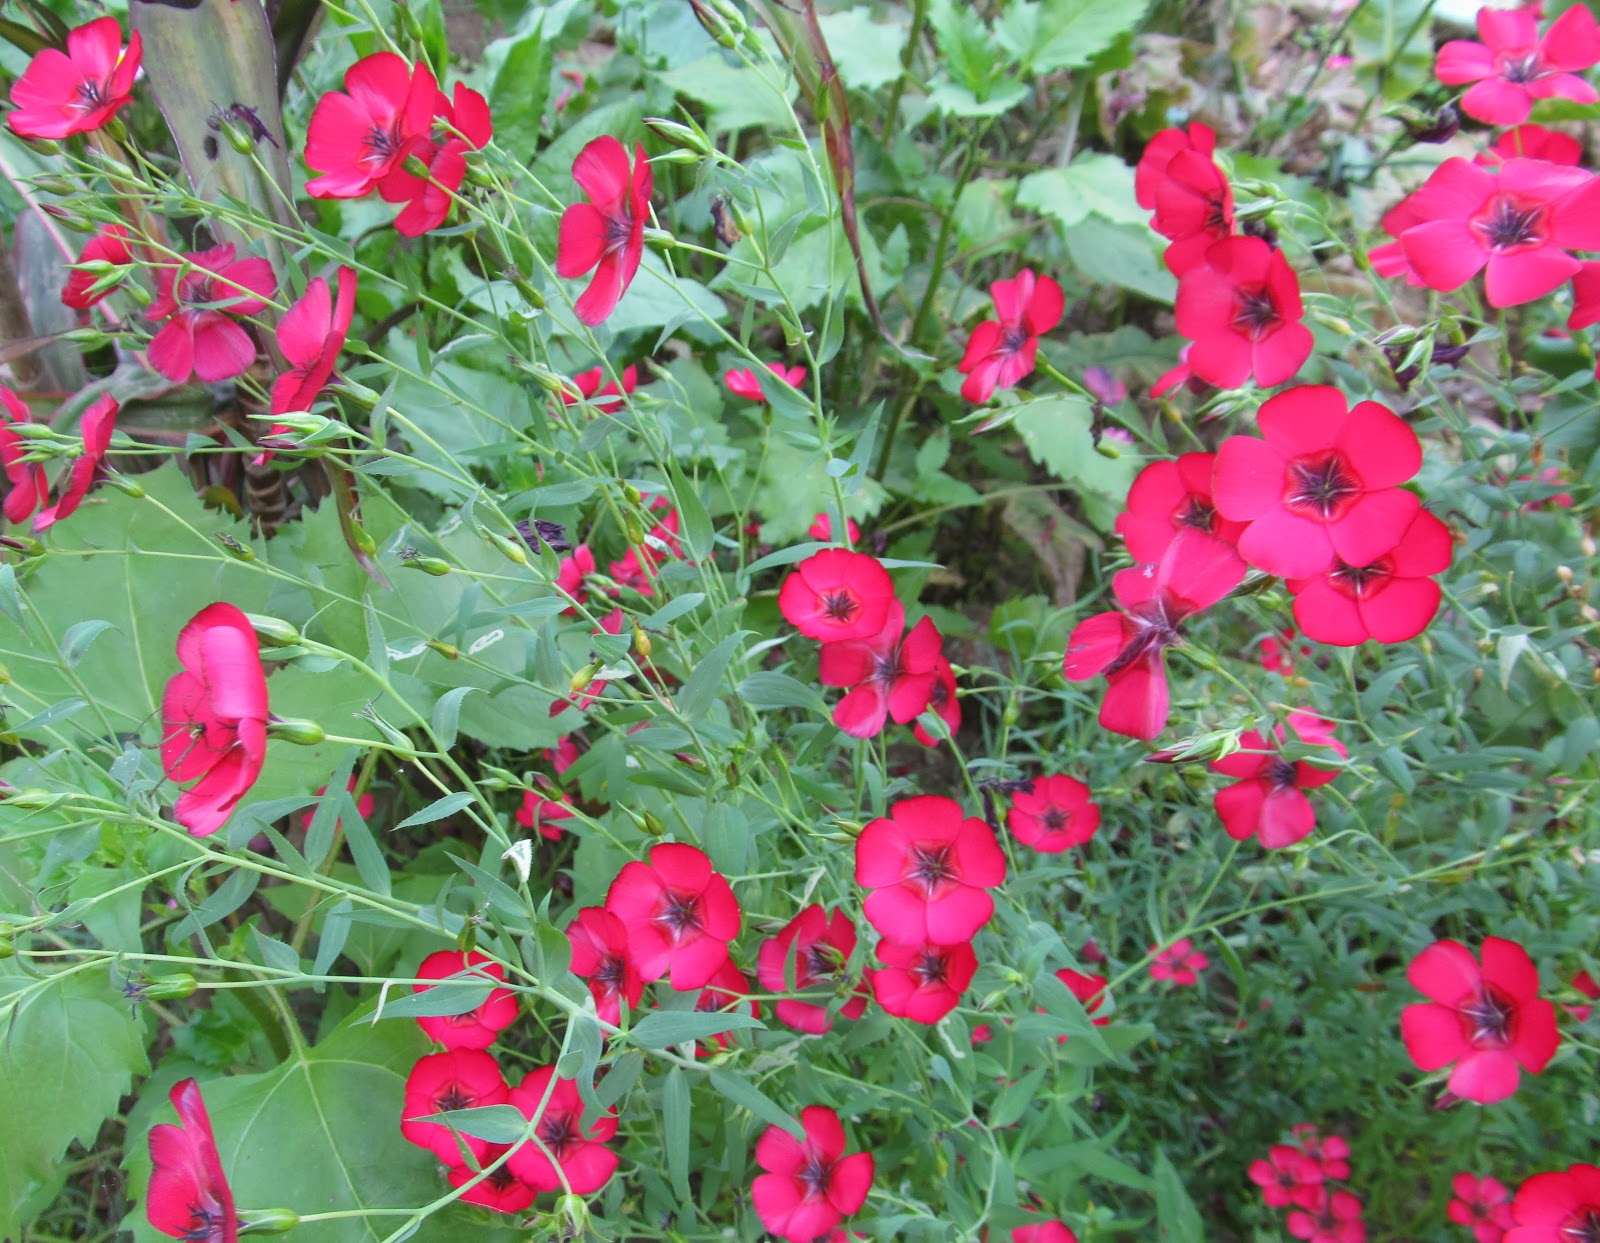 NATURAL & UNIQUE PHOTOGRAPHY: SCARLET FLAX OR FLOWERING ...